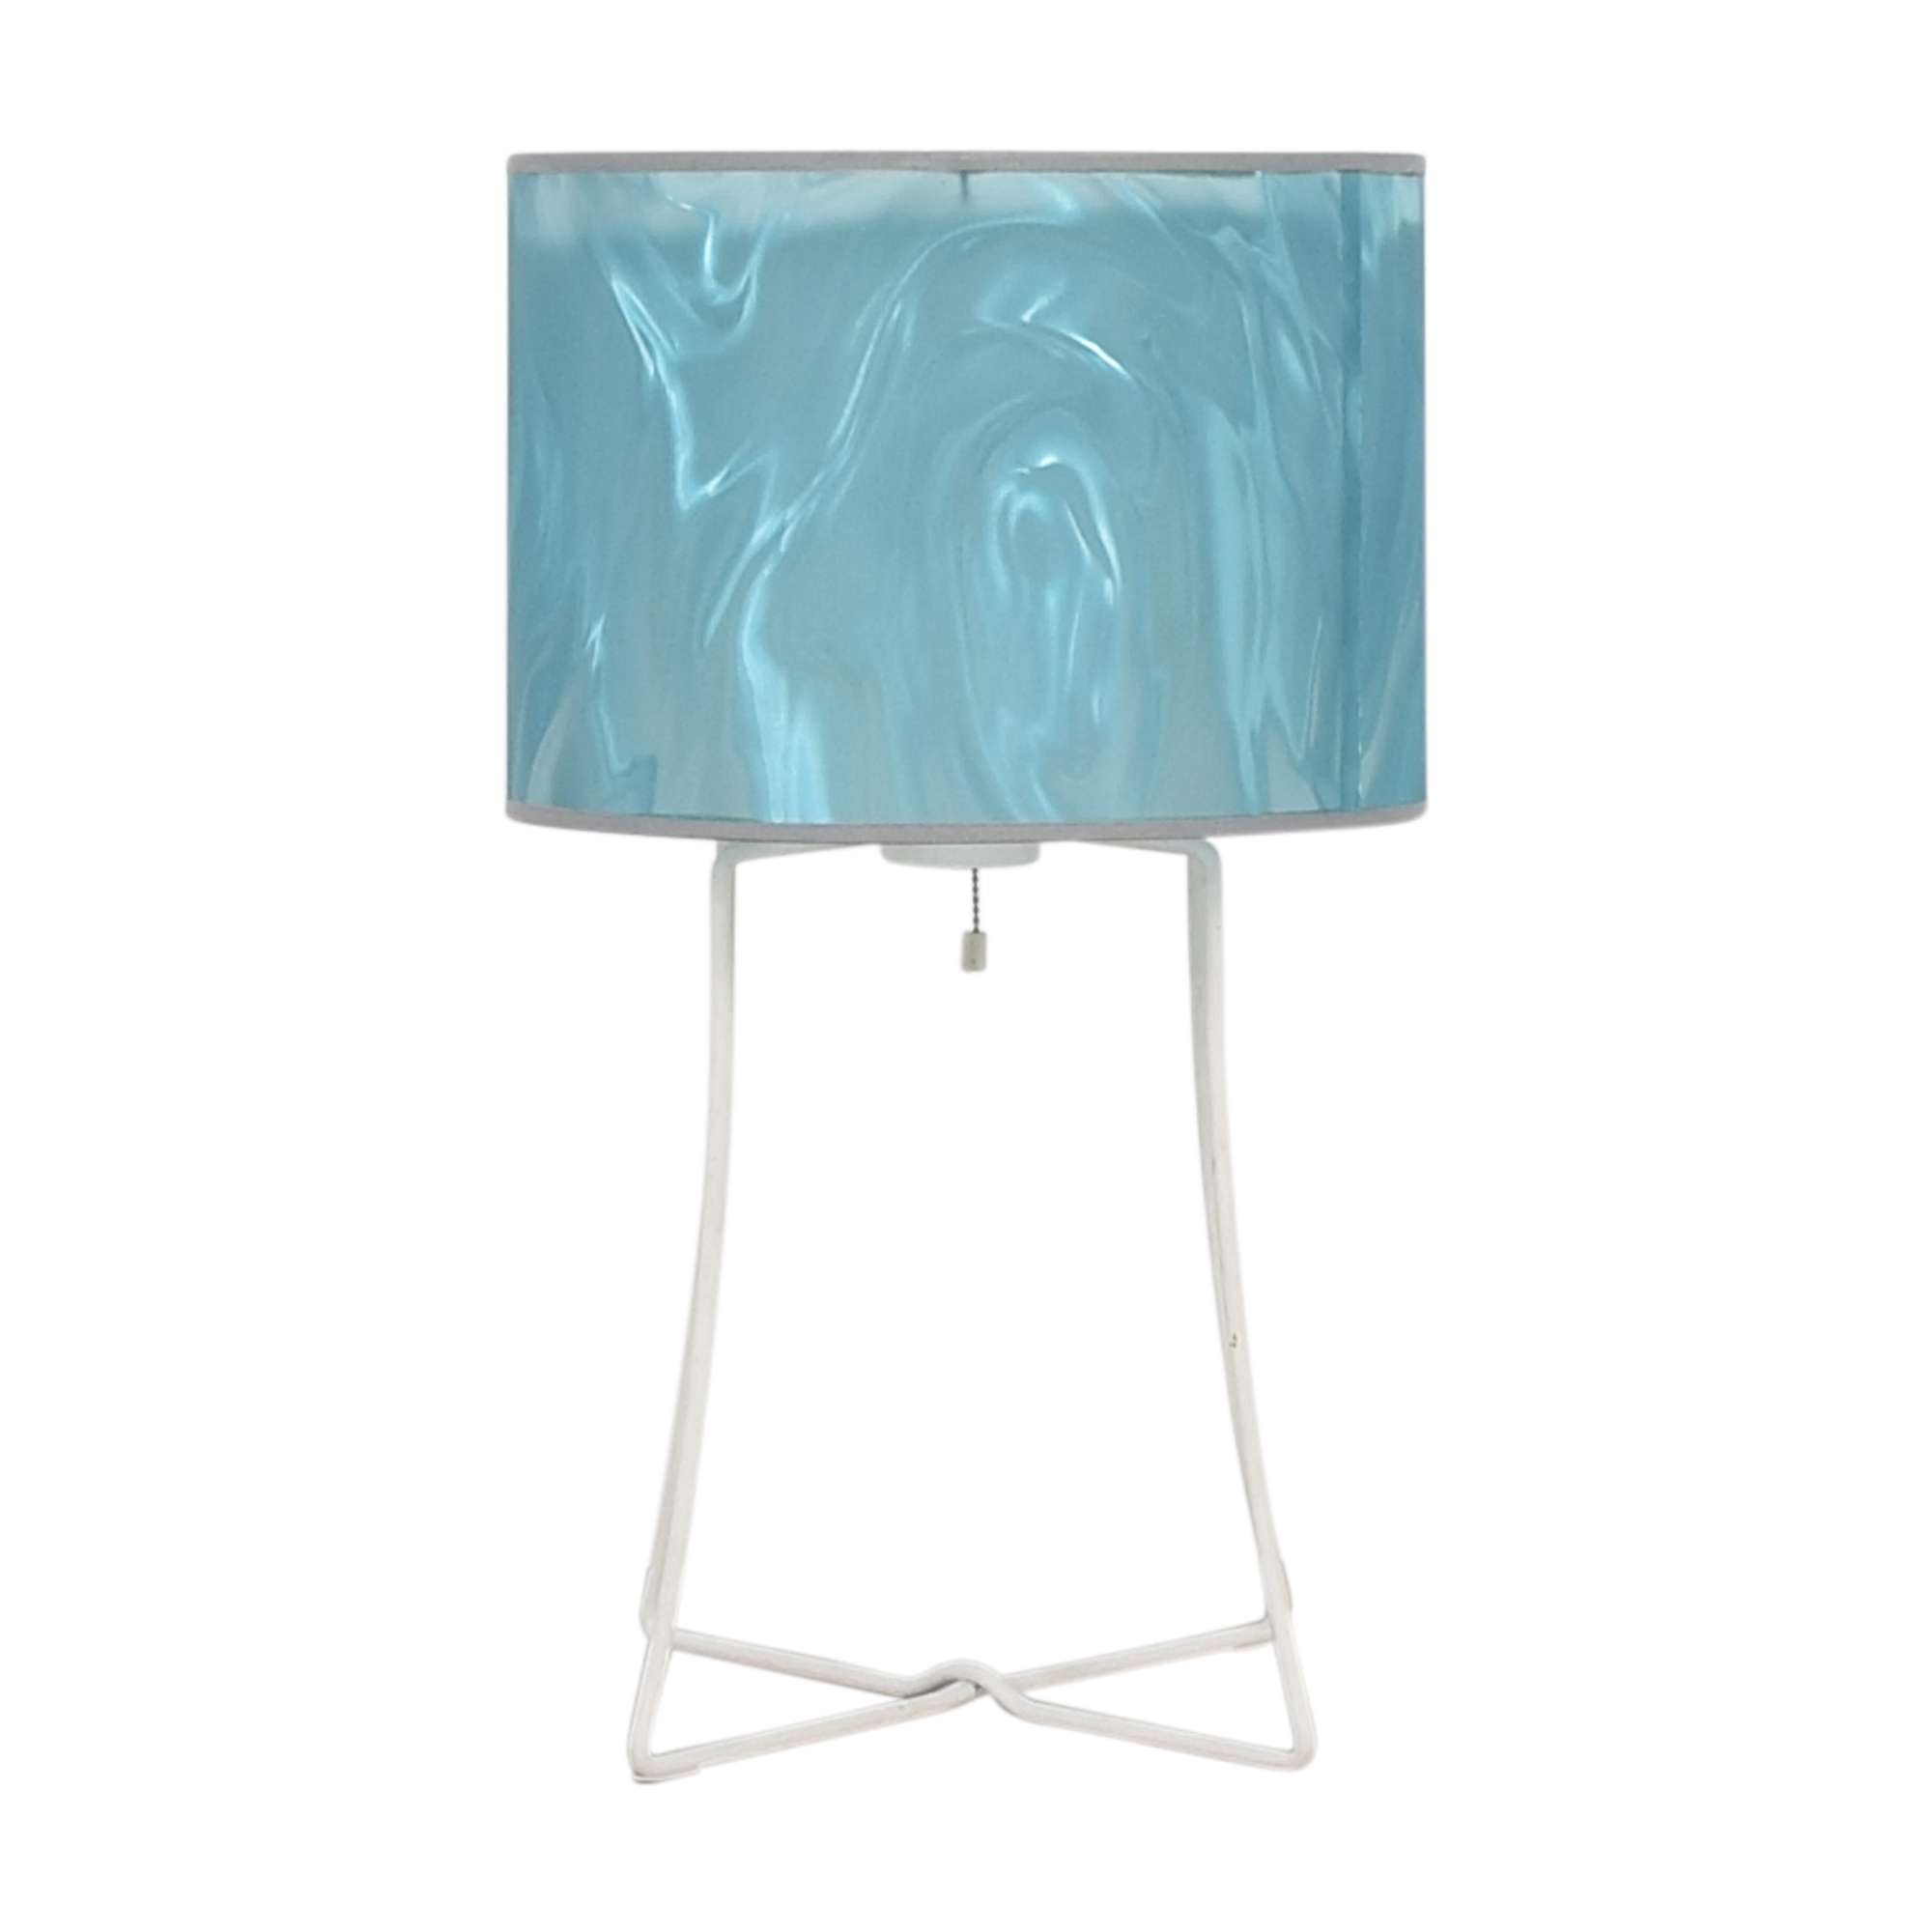 Lights Up Lighting Lights Up Lighting Virgil Table Lamp ct